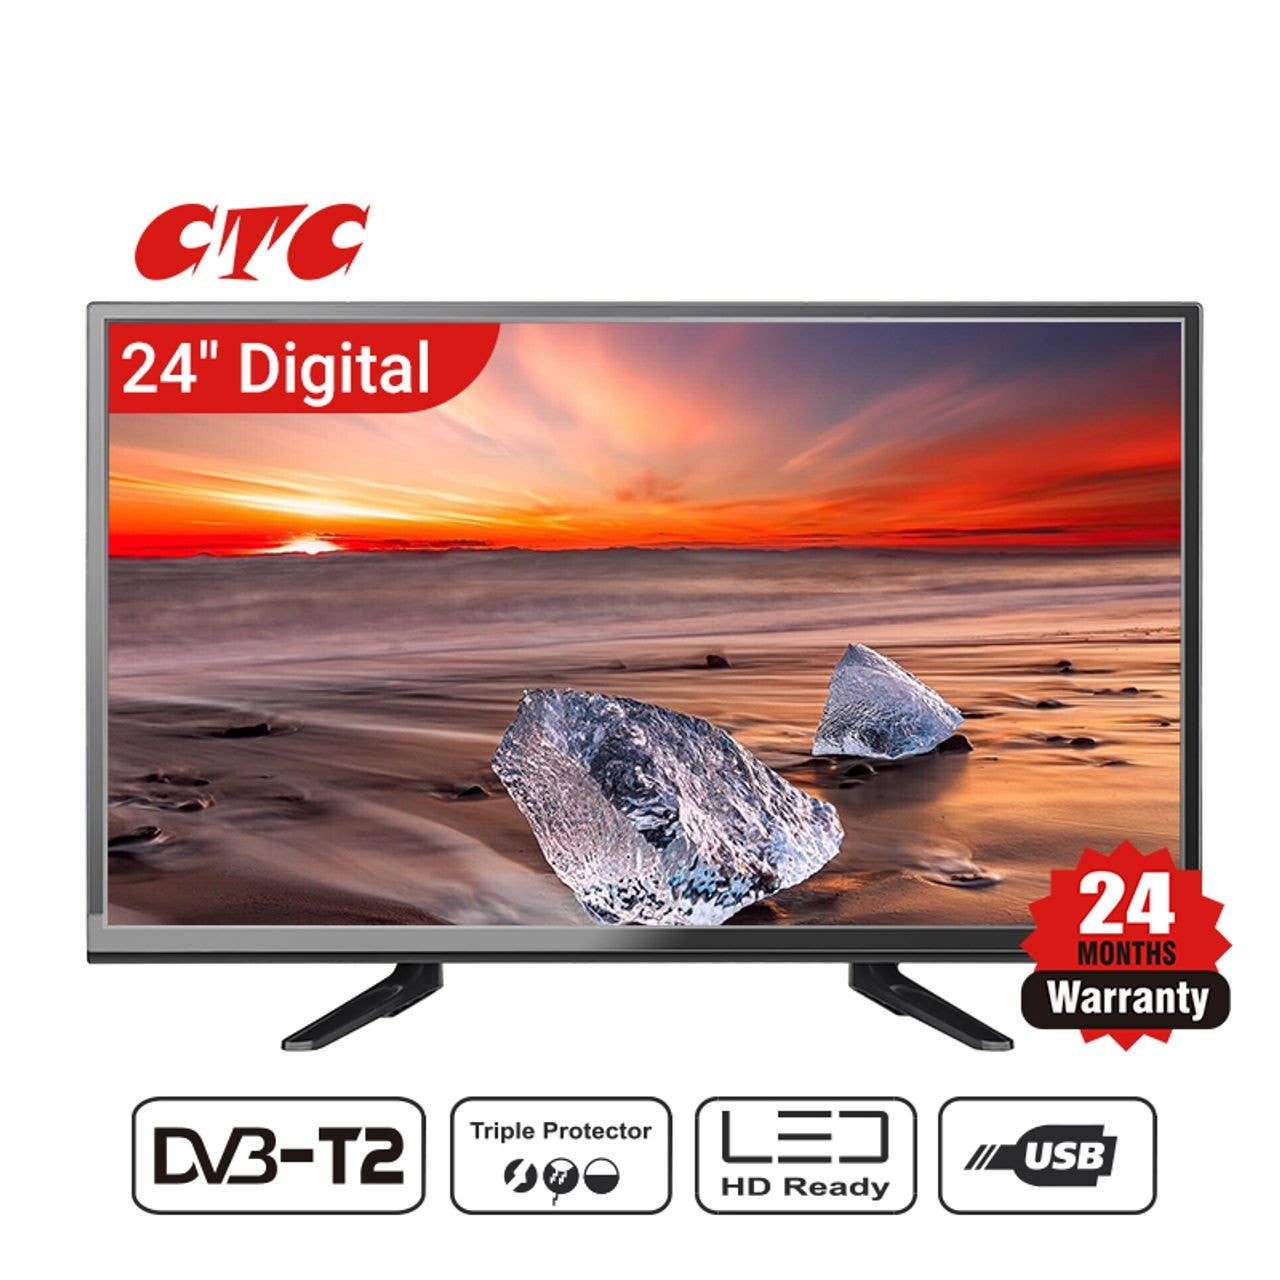 CTC LED Digital TV 24 inch